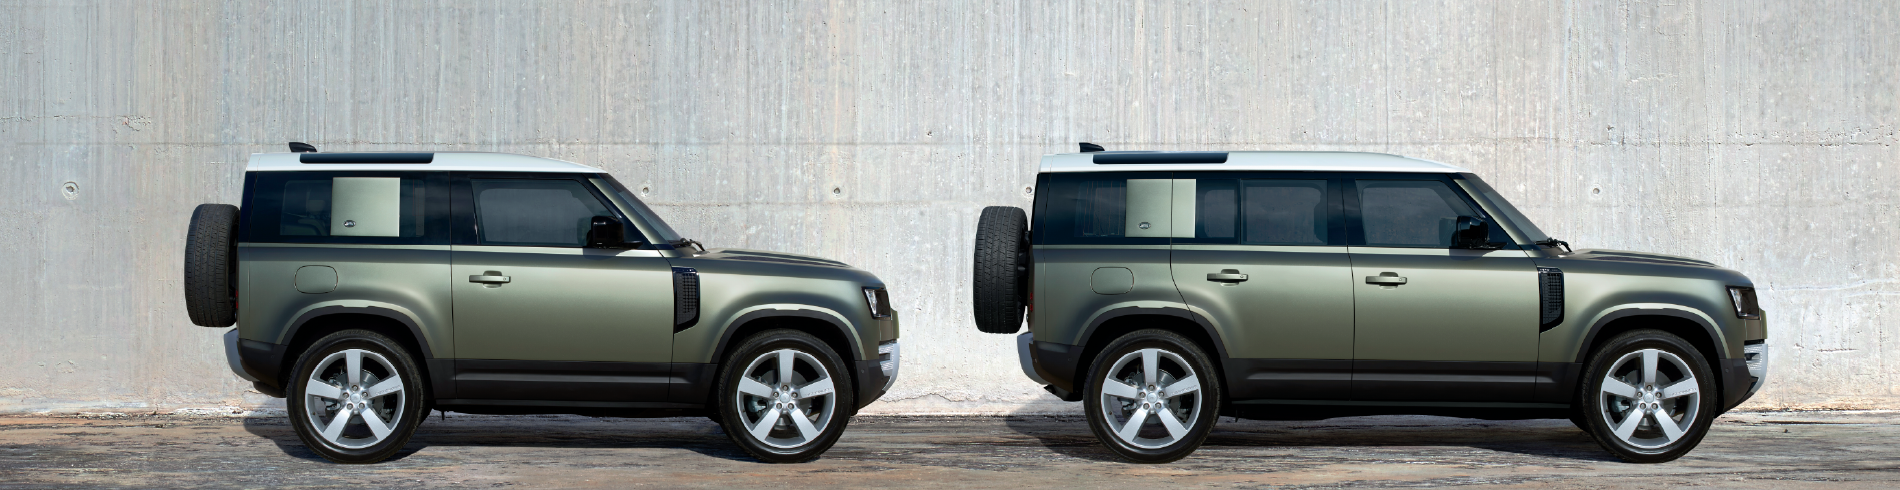 FEATURING THE 2020 LAND ROVER DEFENDER 90 AND 110 EDITION MODELS IN GREEN IN FRONT OF GRAY WALL